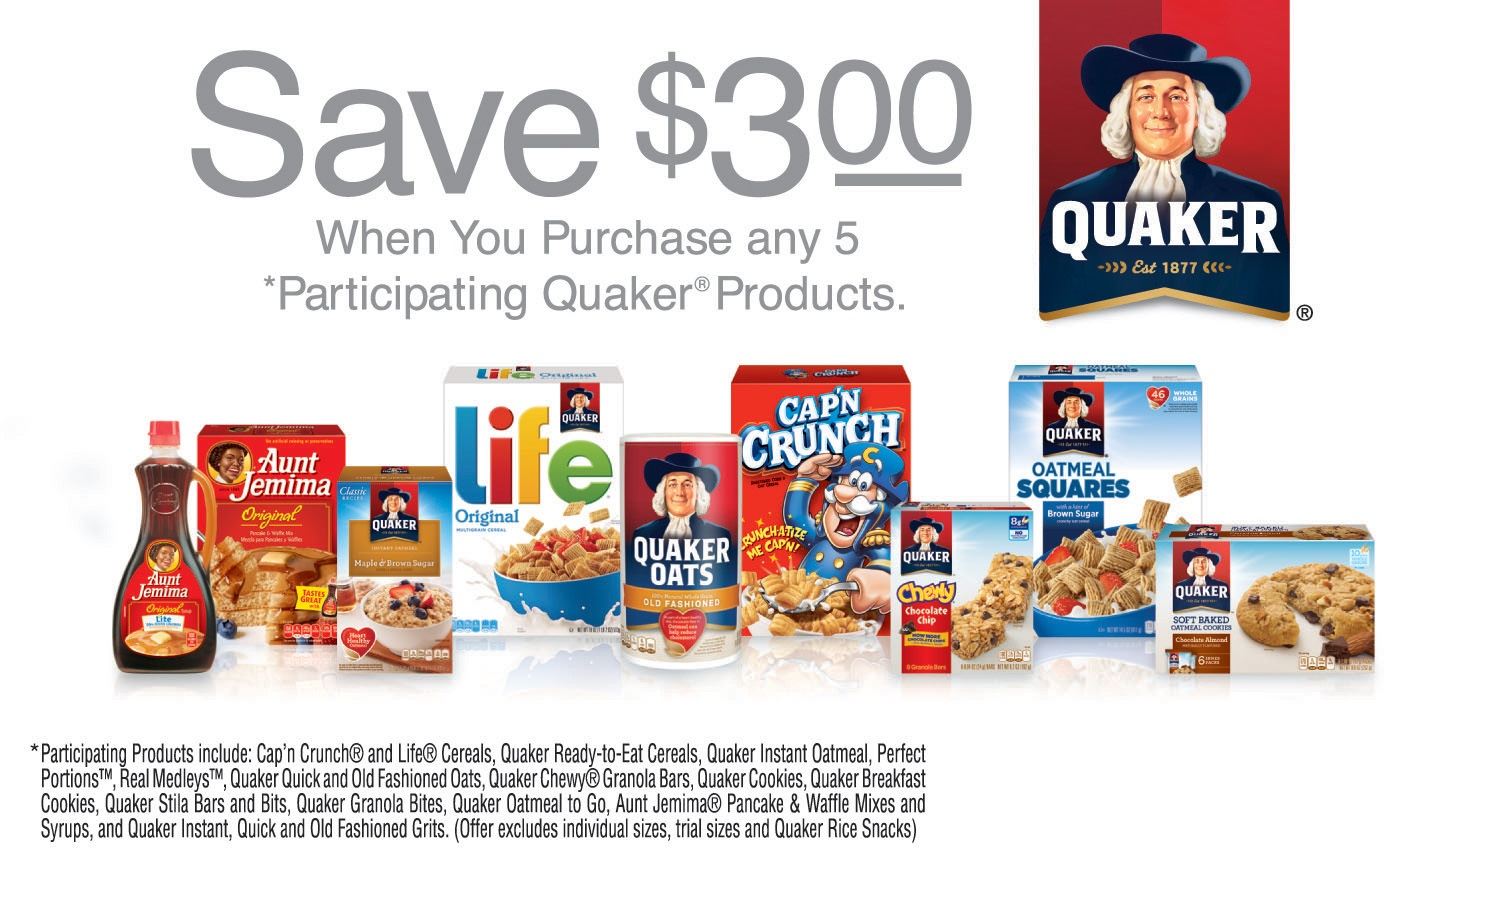 Quaker Products